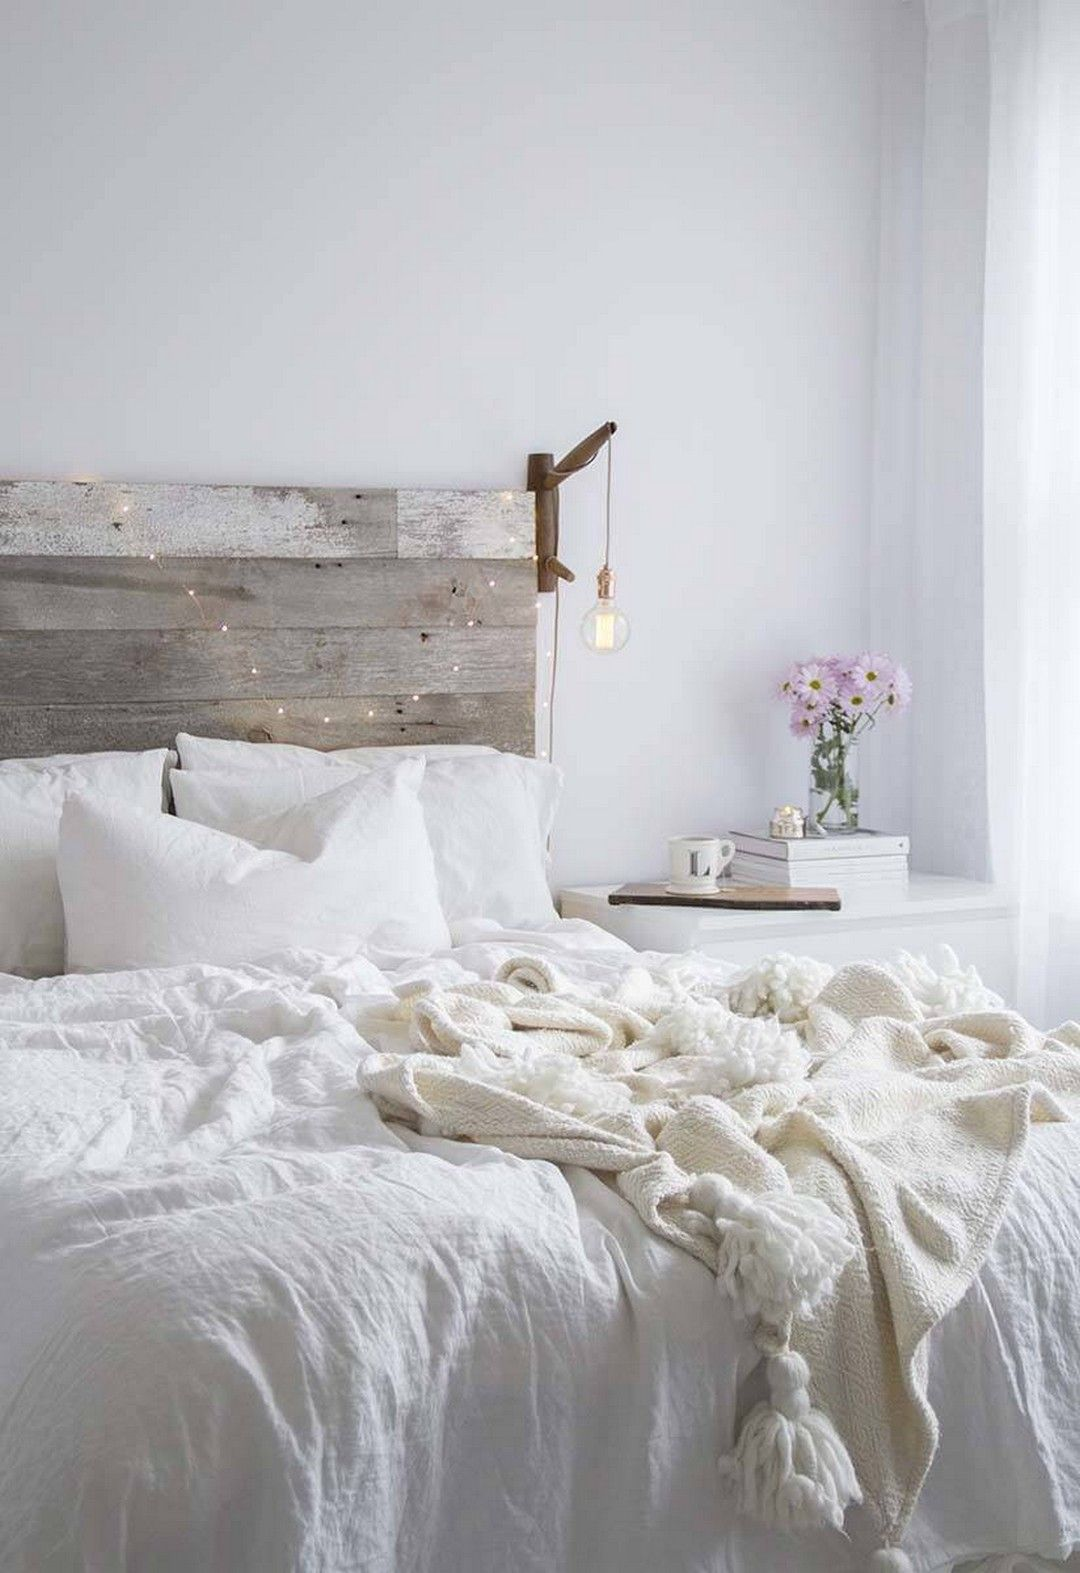 Stylish Bedroom Decor Delectable 20 Modern And Stylish Rustic Scandinavian Bedroom Decor  Stylish Design Inspiration